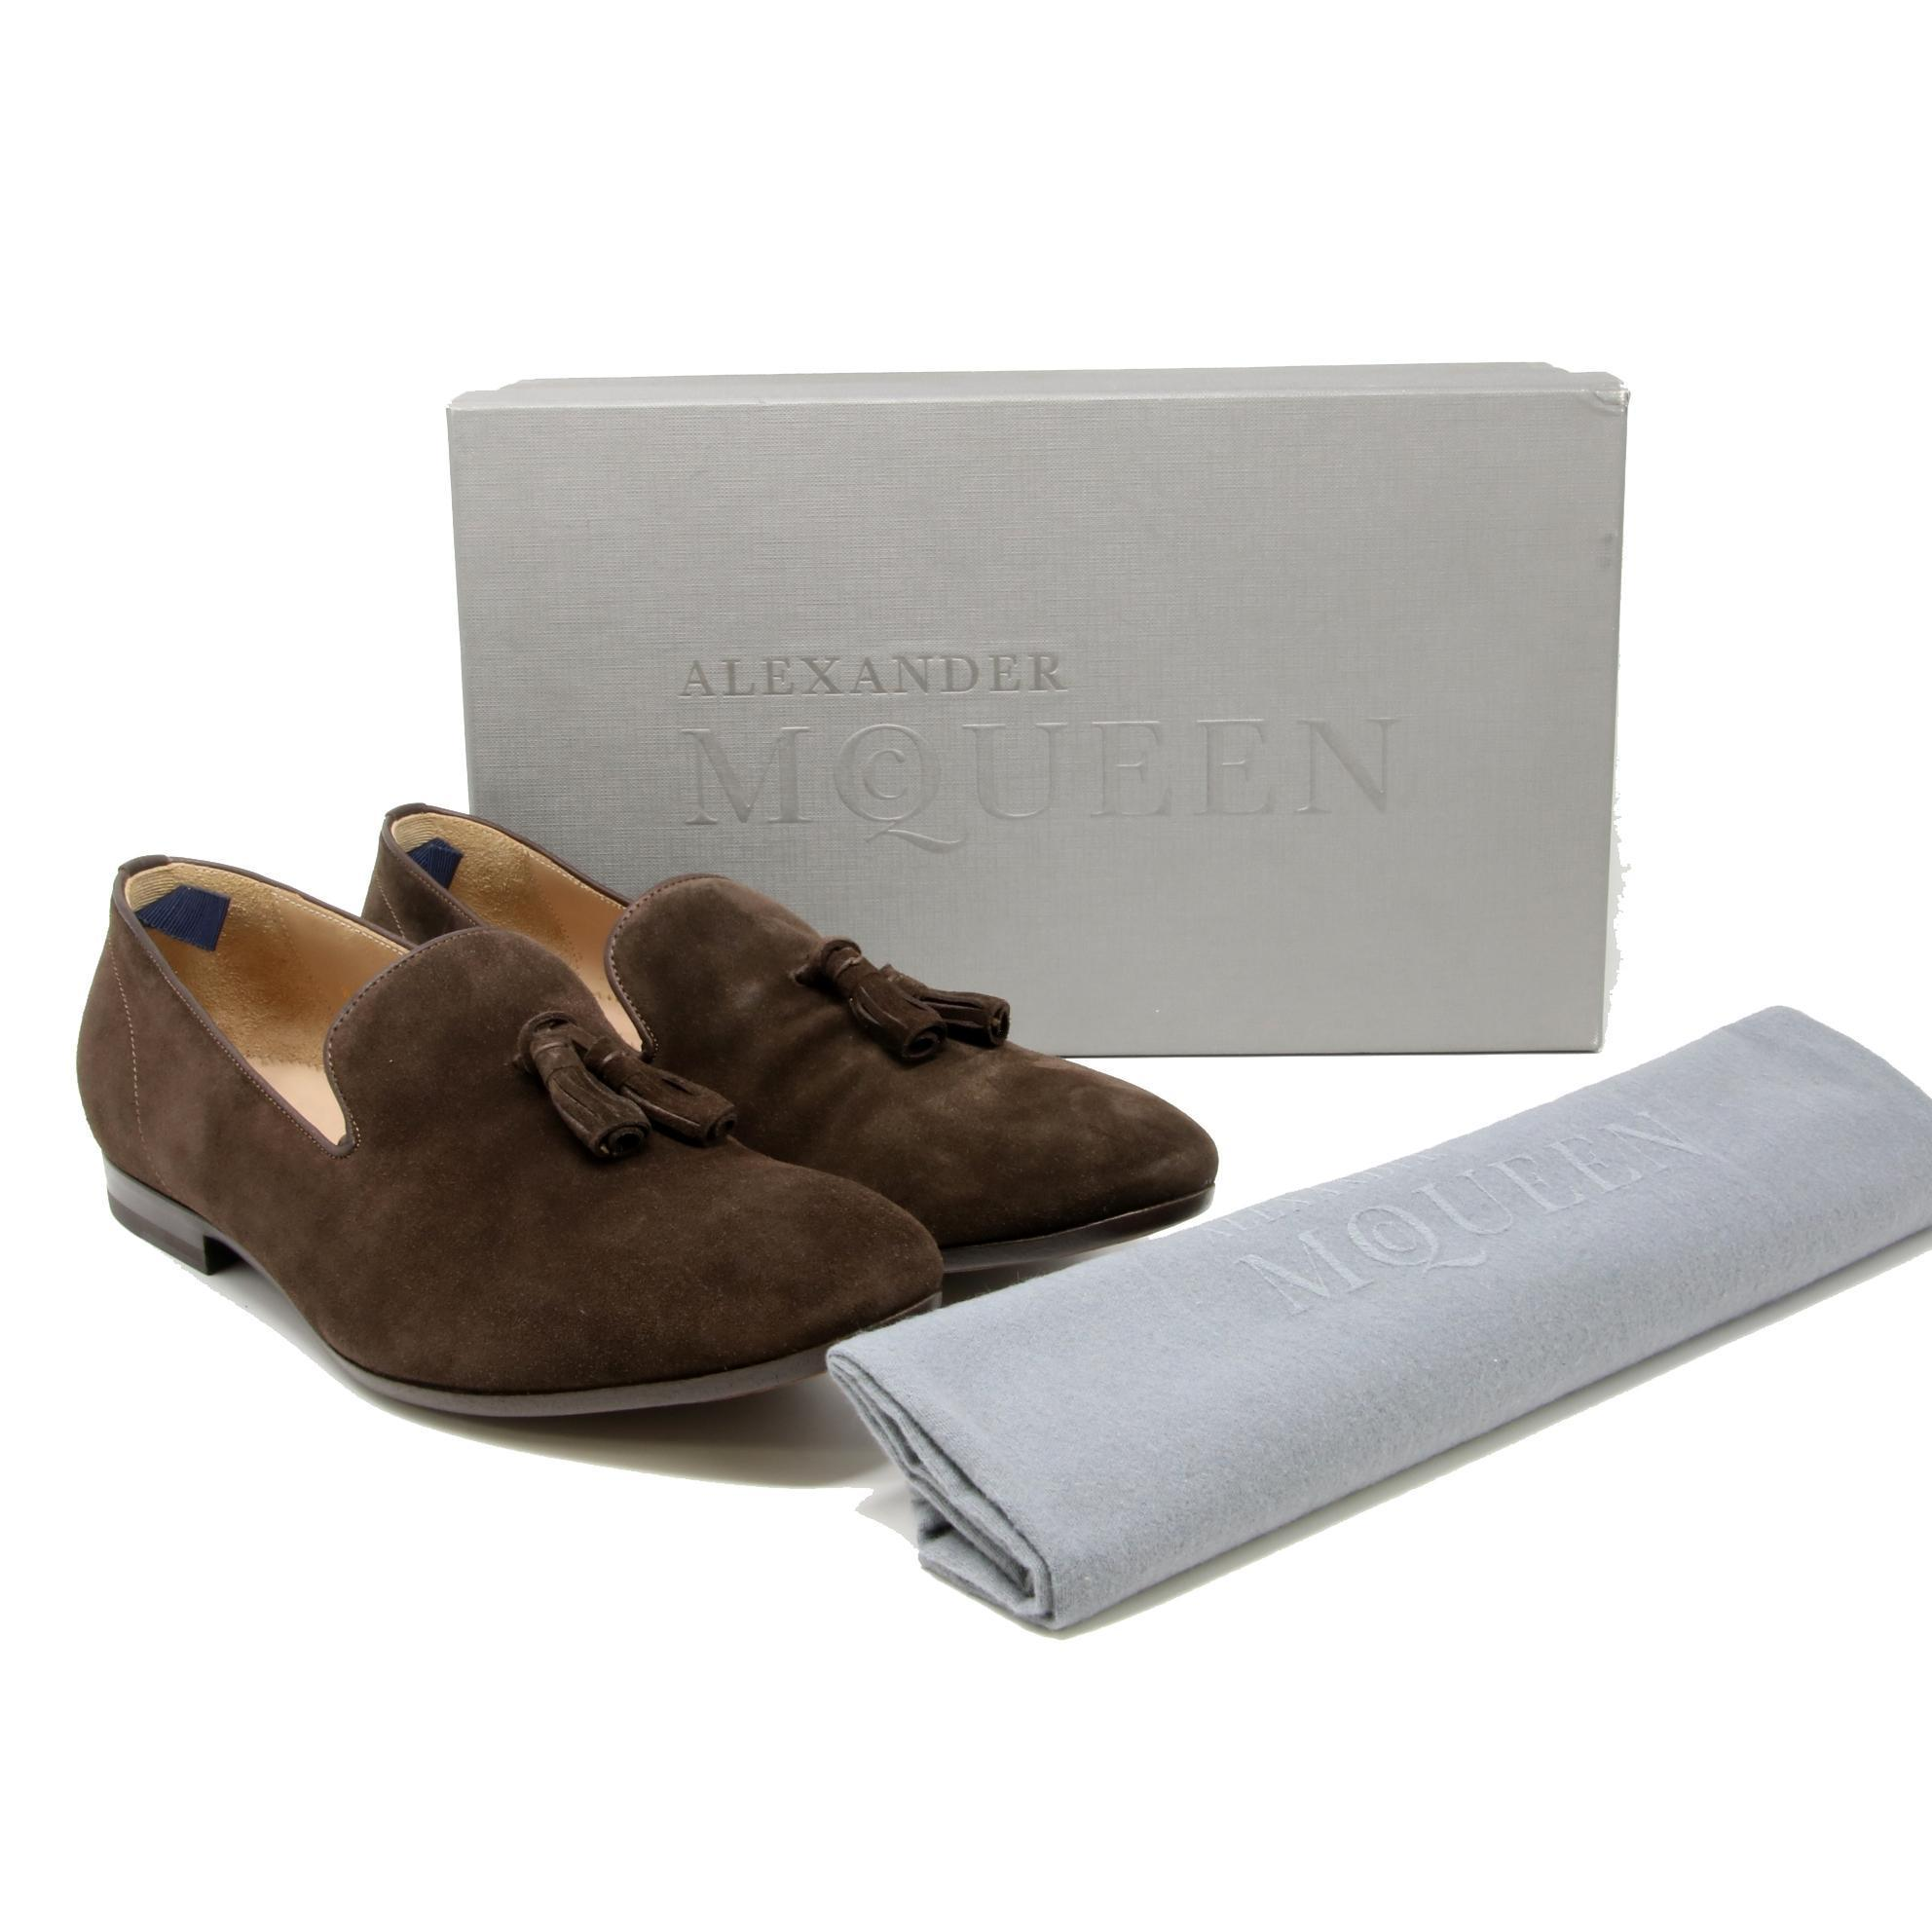 Alexander McQueen Brown Suede Tasseled Slip On Men's Loafers